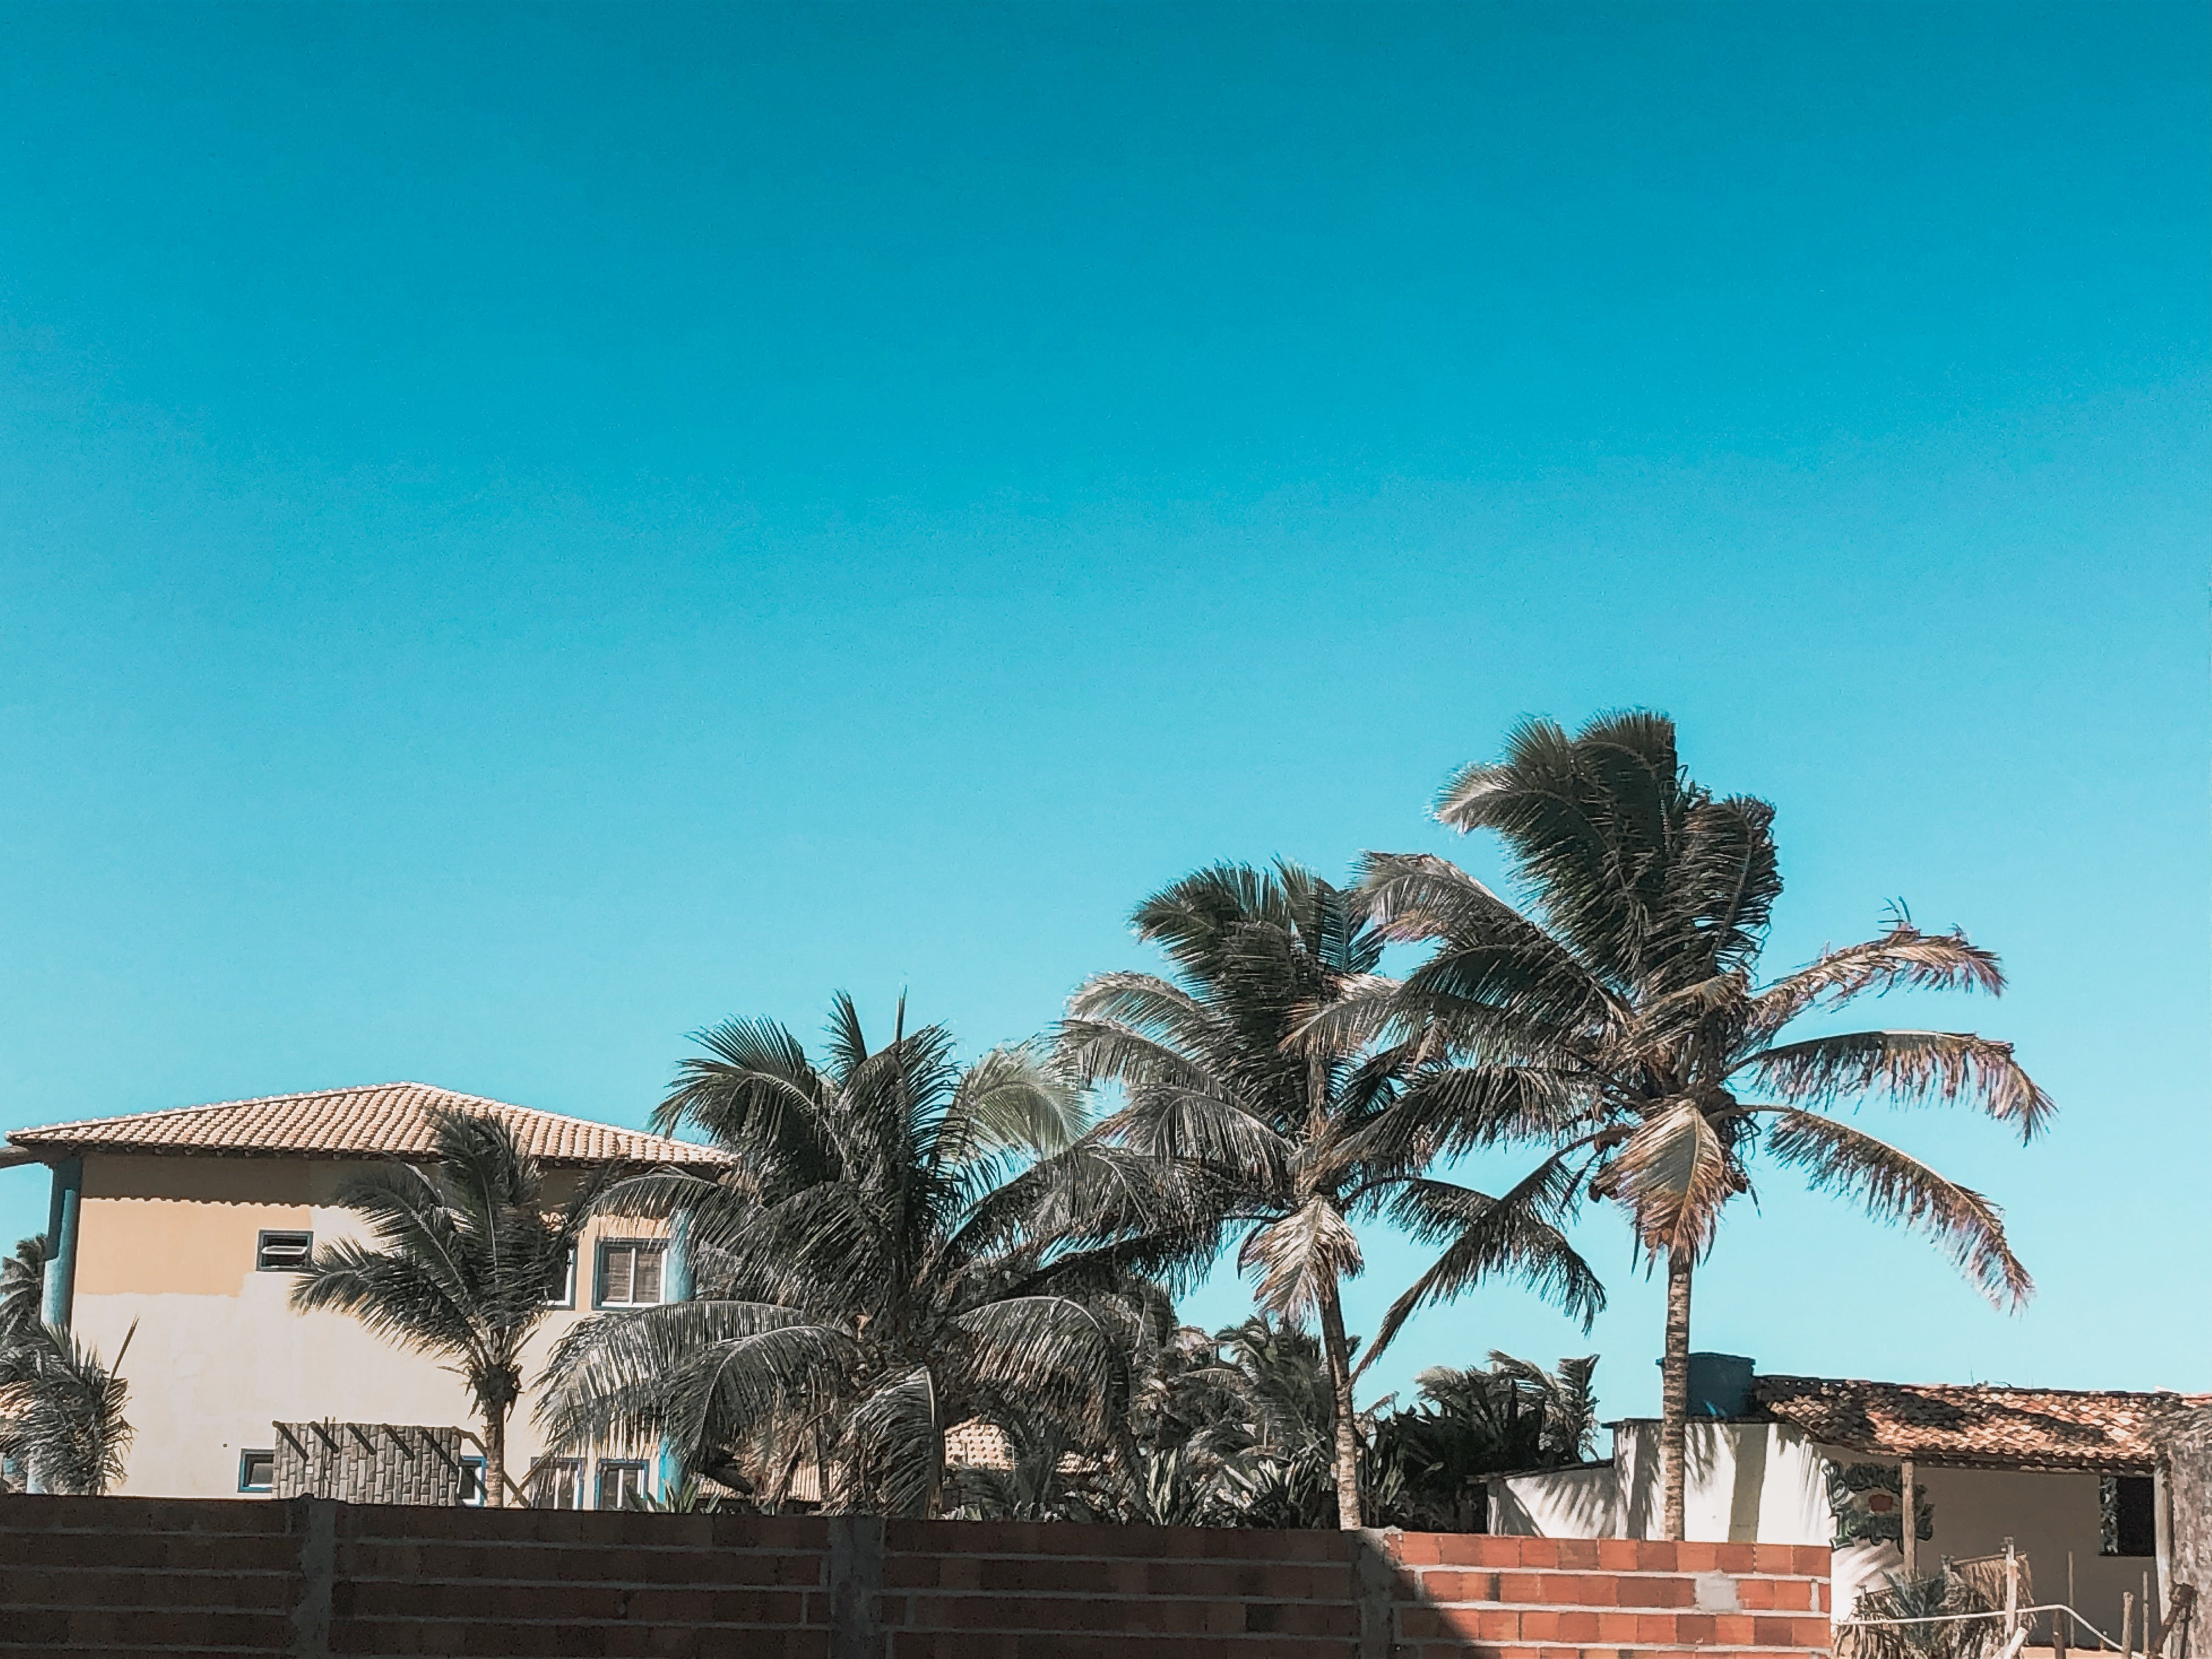 Photo of Palm Trees Near Houses Under Blue Sky